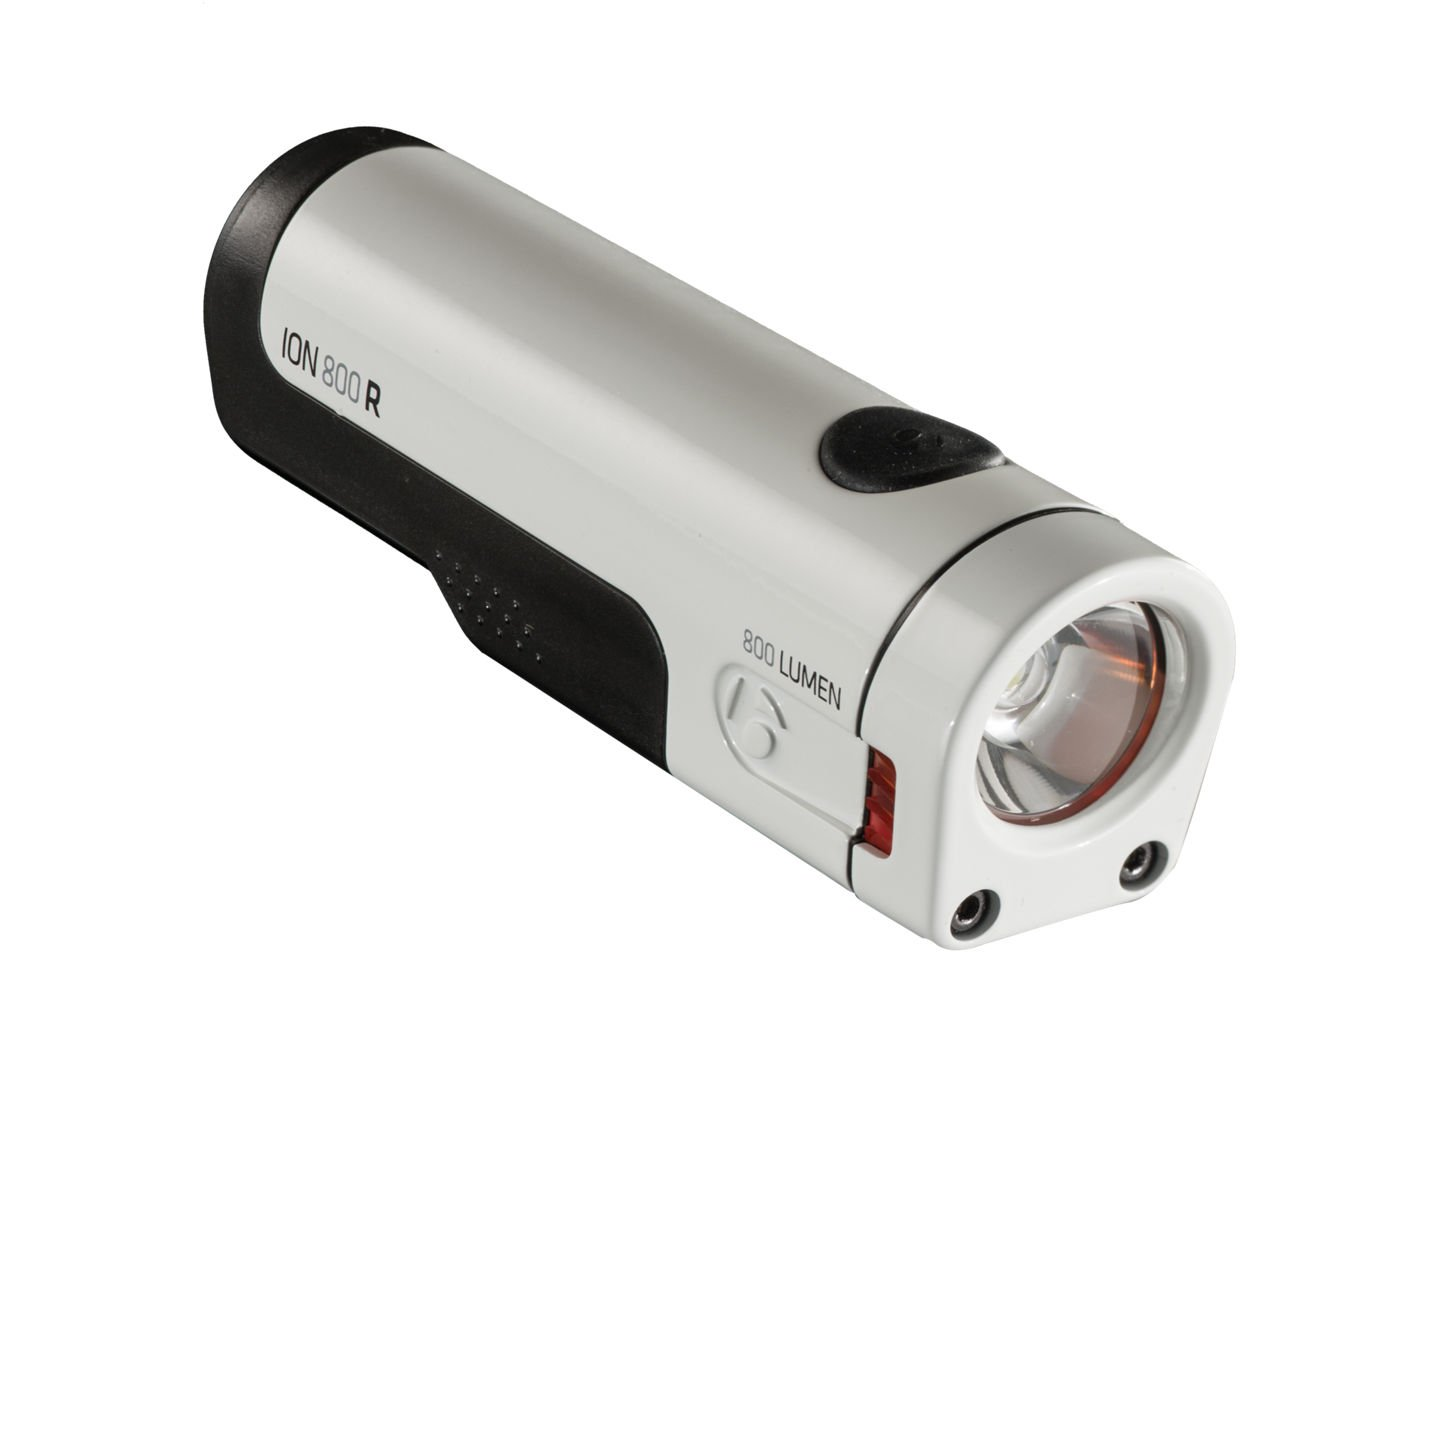 Bontrager ion 800 R bicycle light